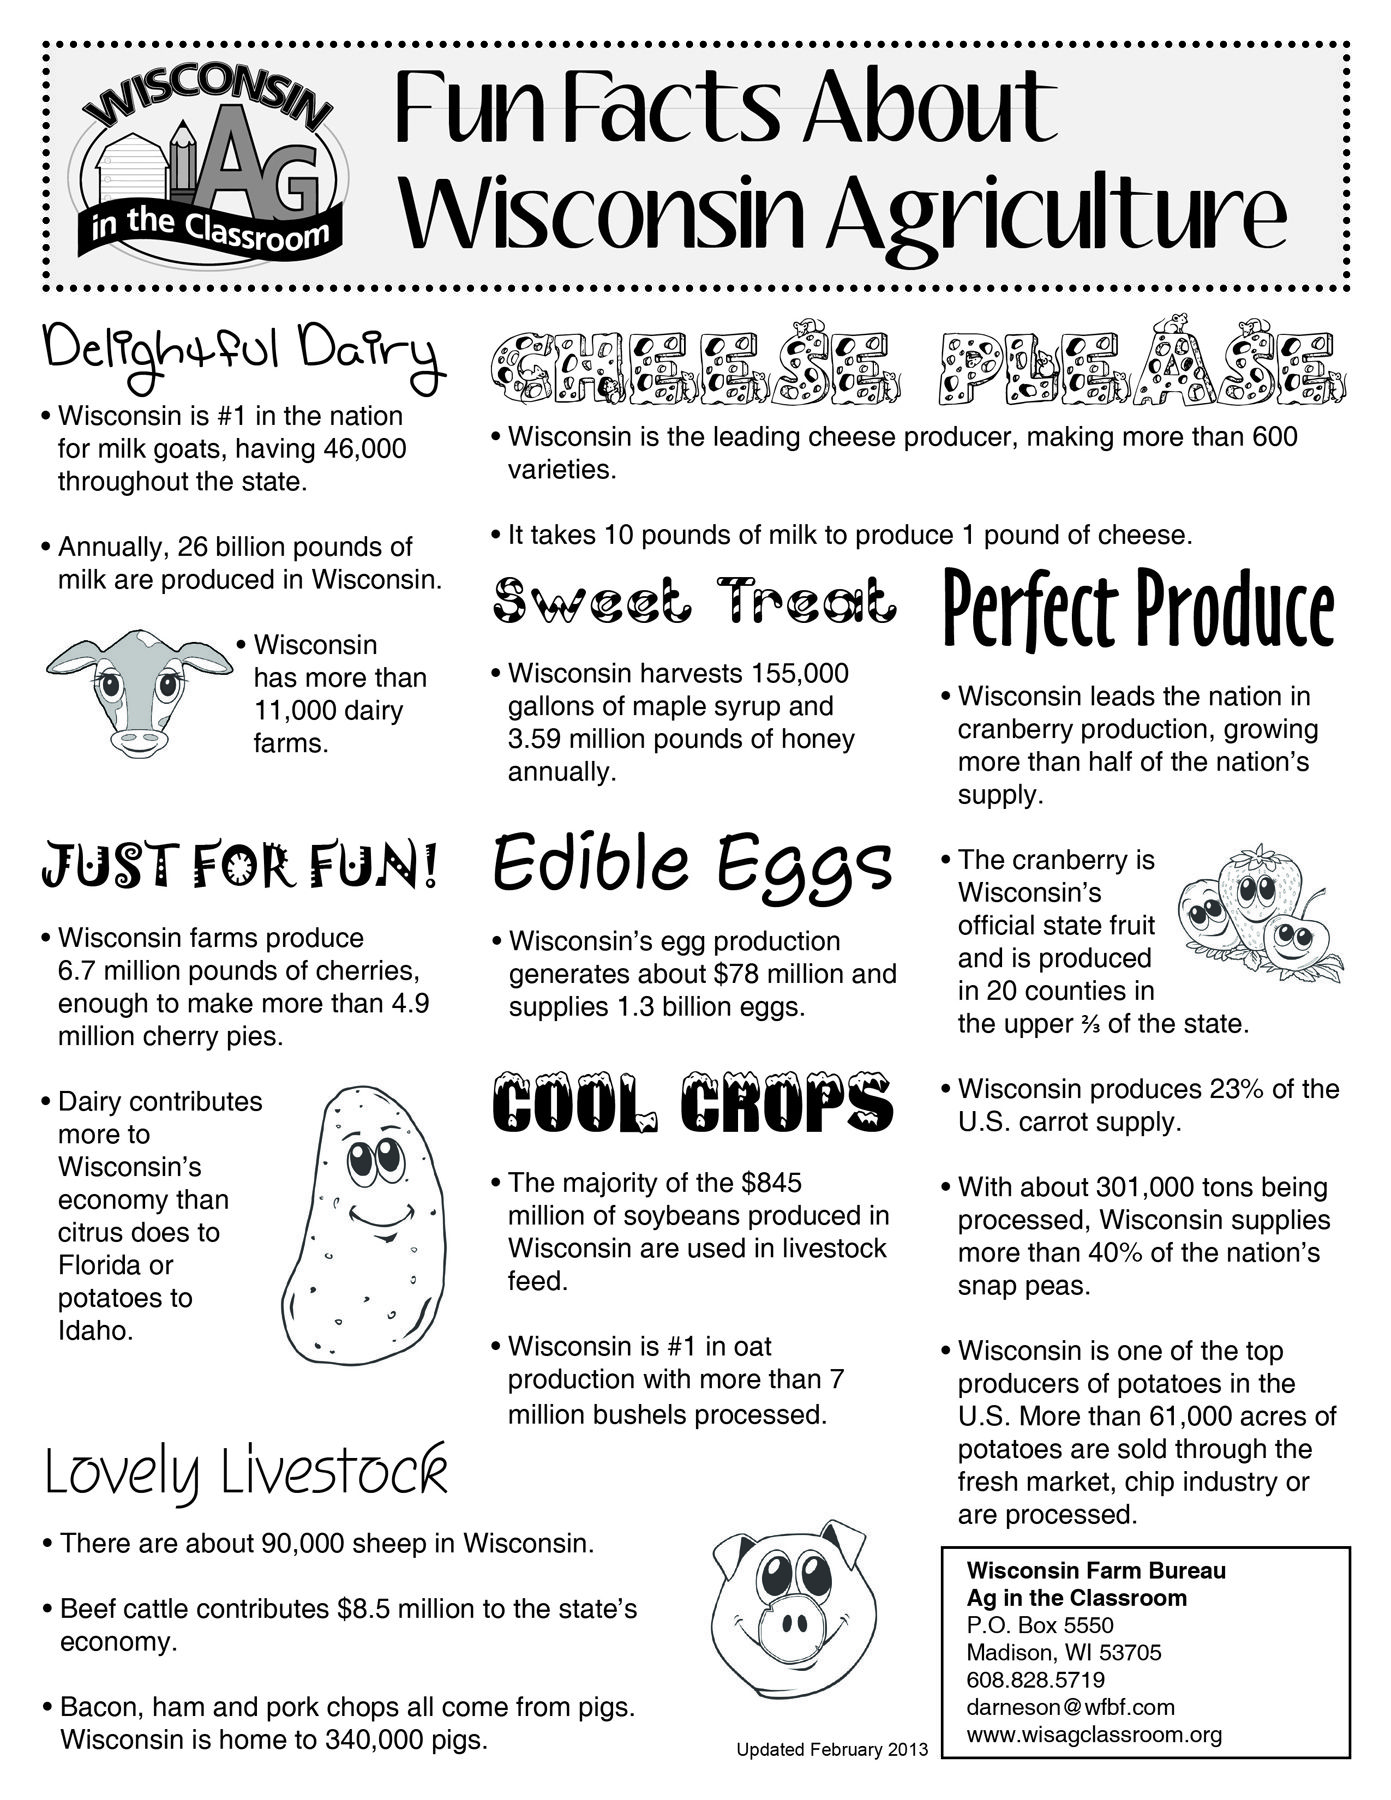 Fun Facts About Wisconsin Agriculture